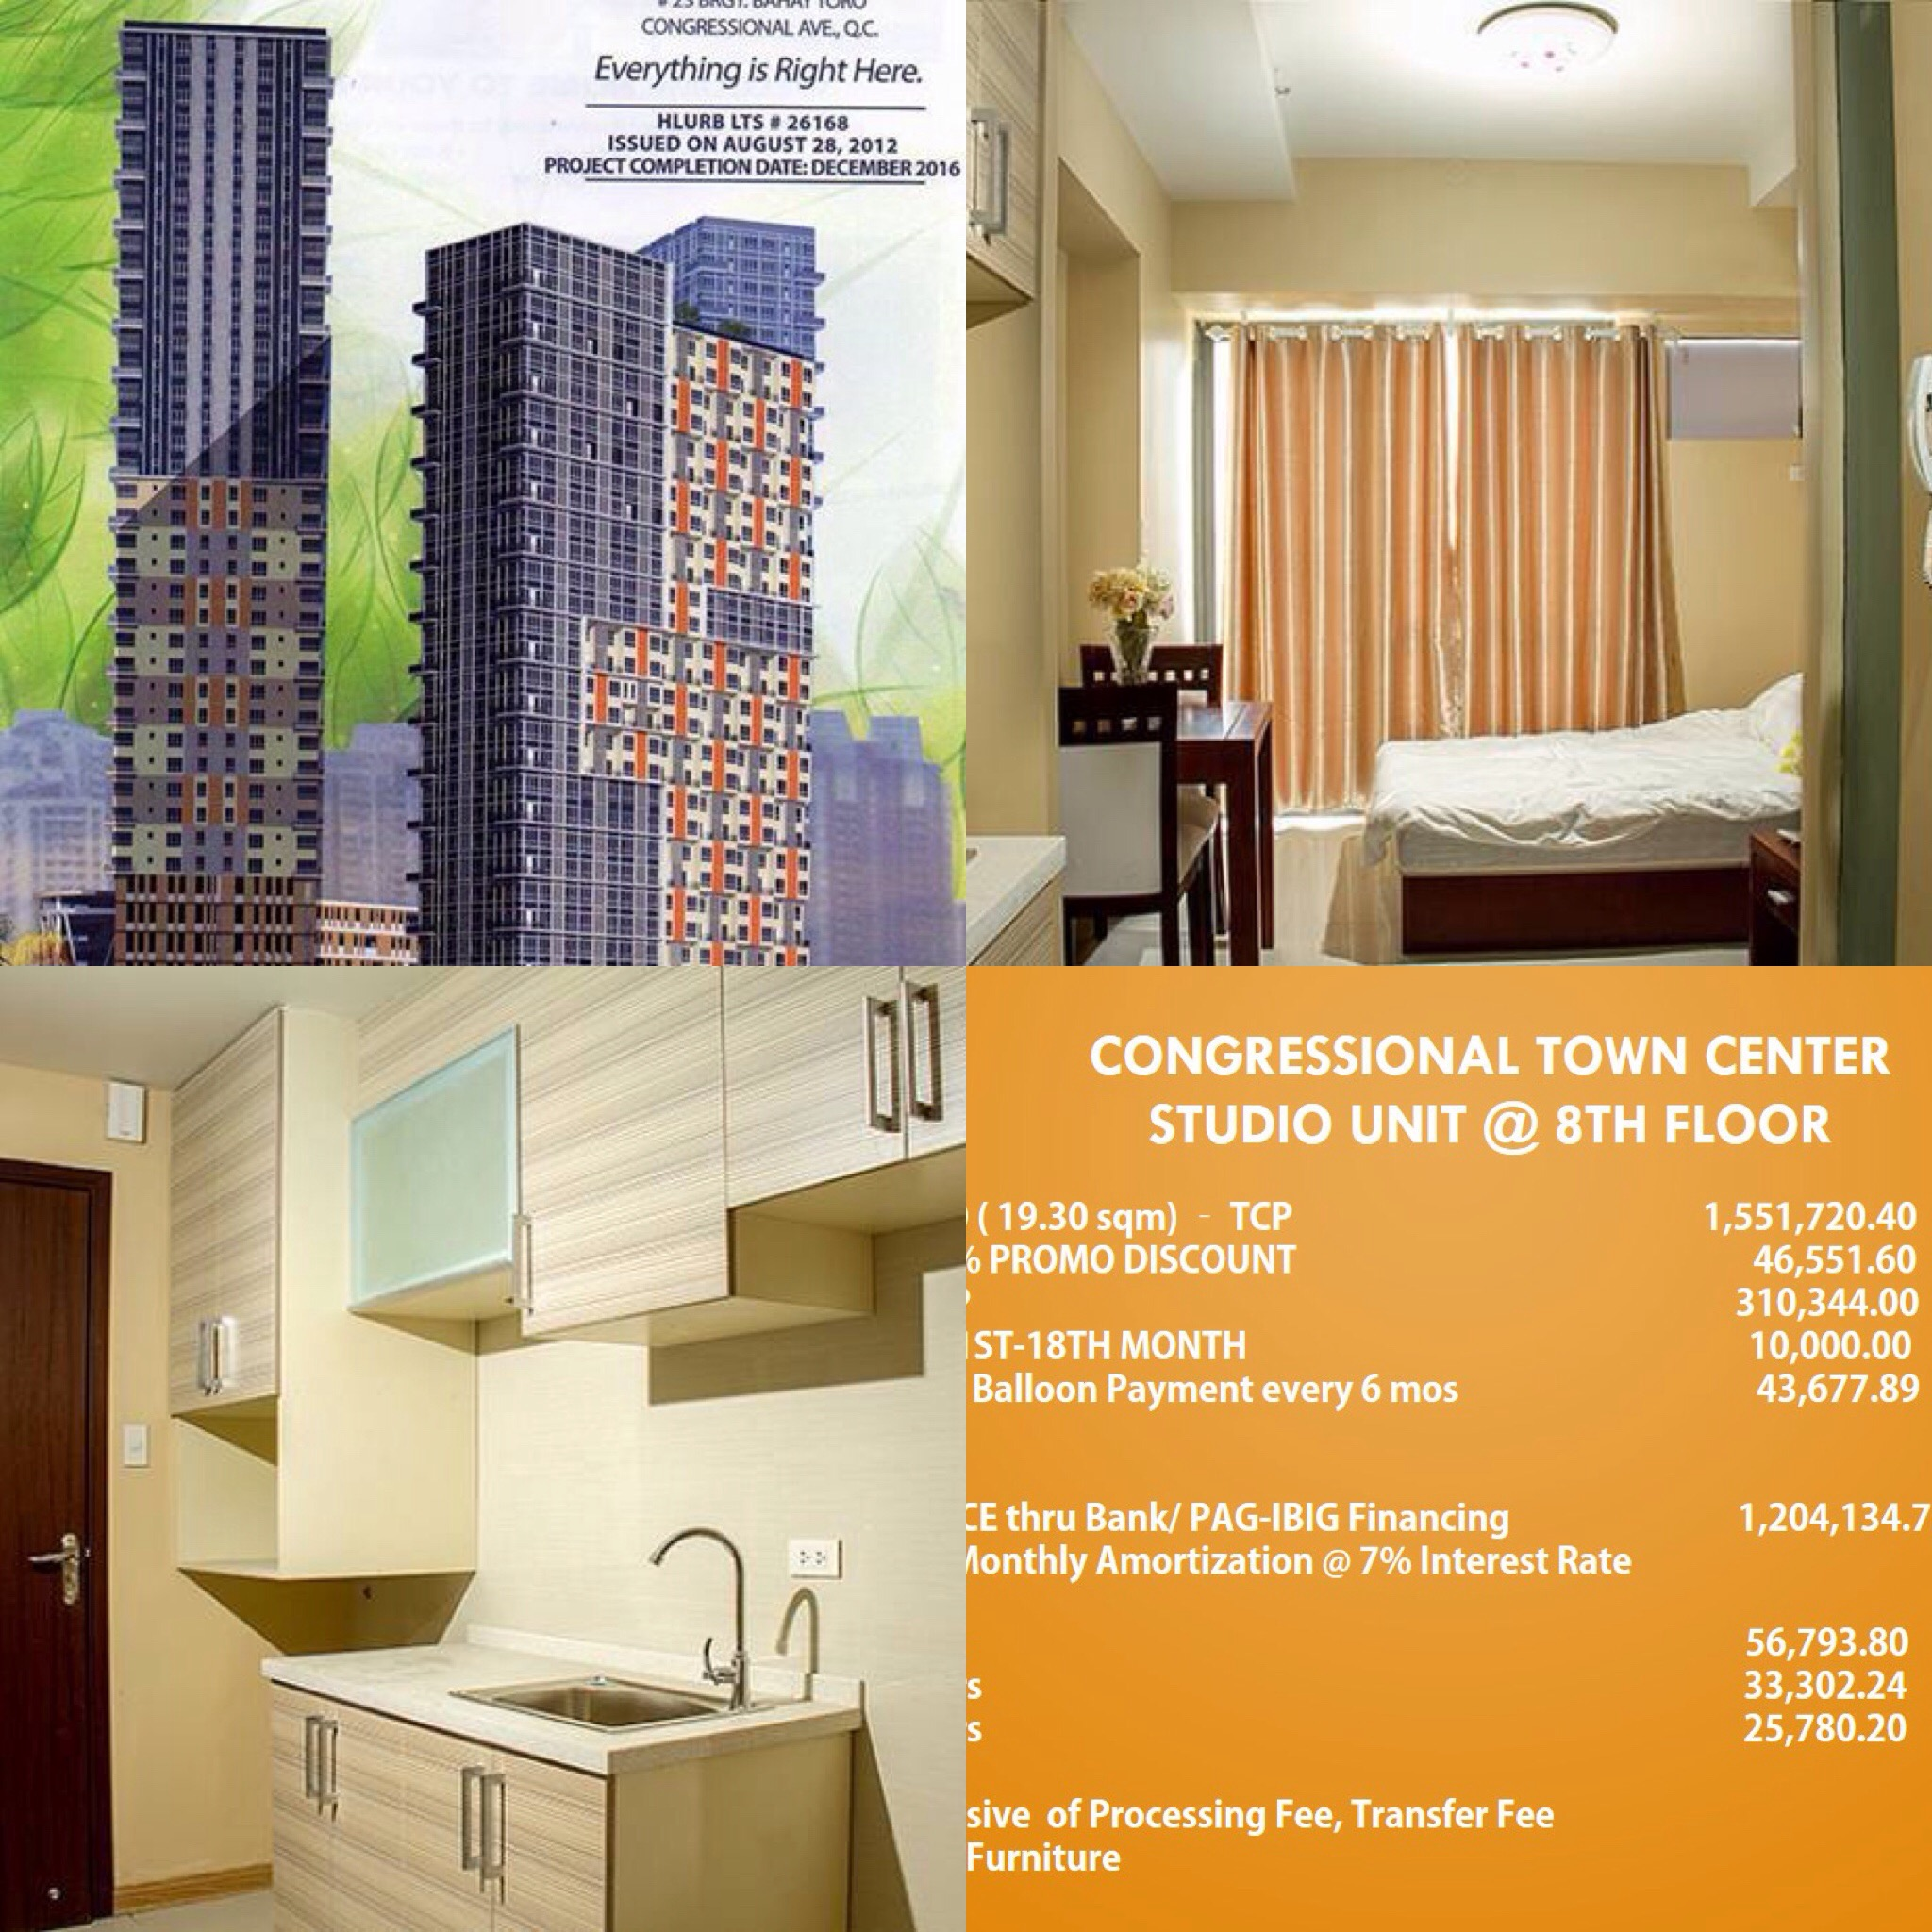 congressional condo qc for sale 09235564517